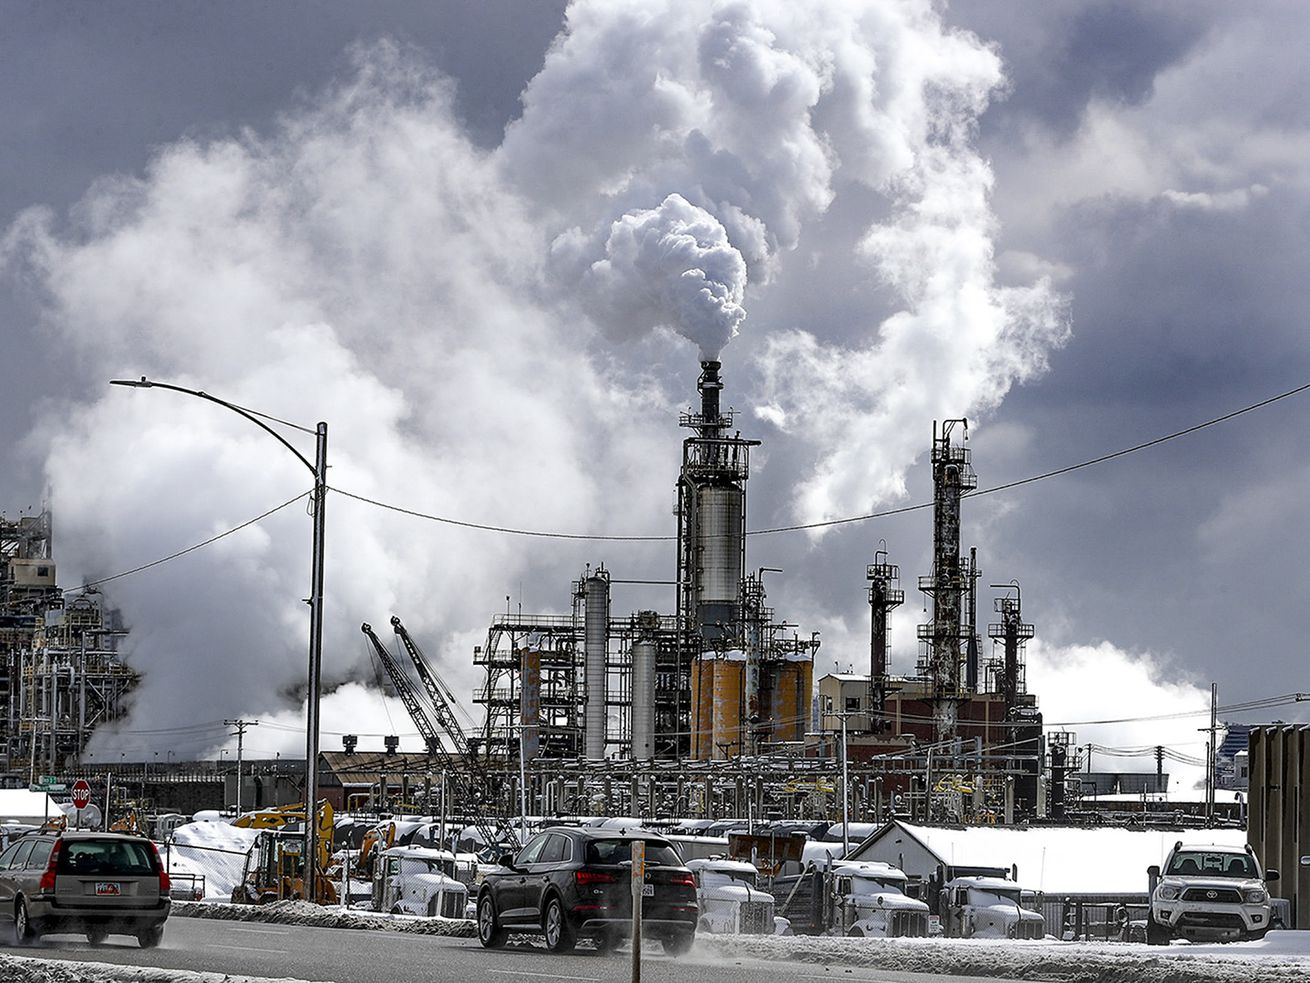 Can pollution regulations help an industry's bottom line?